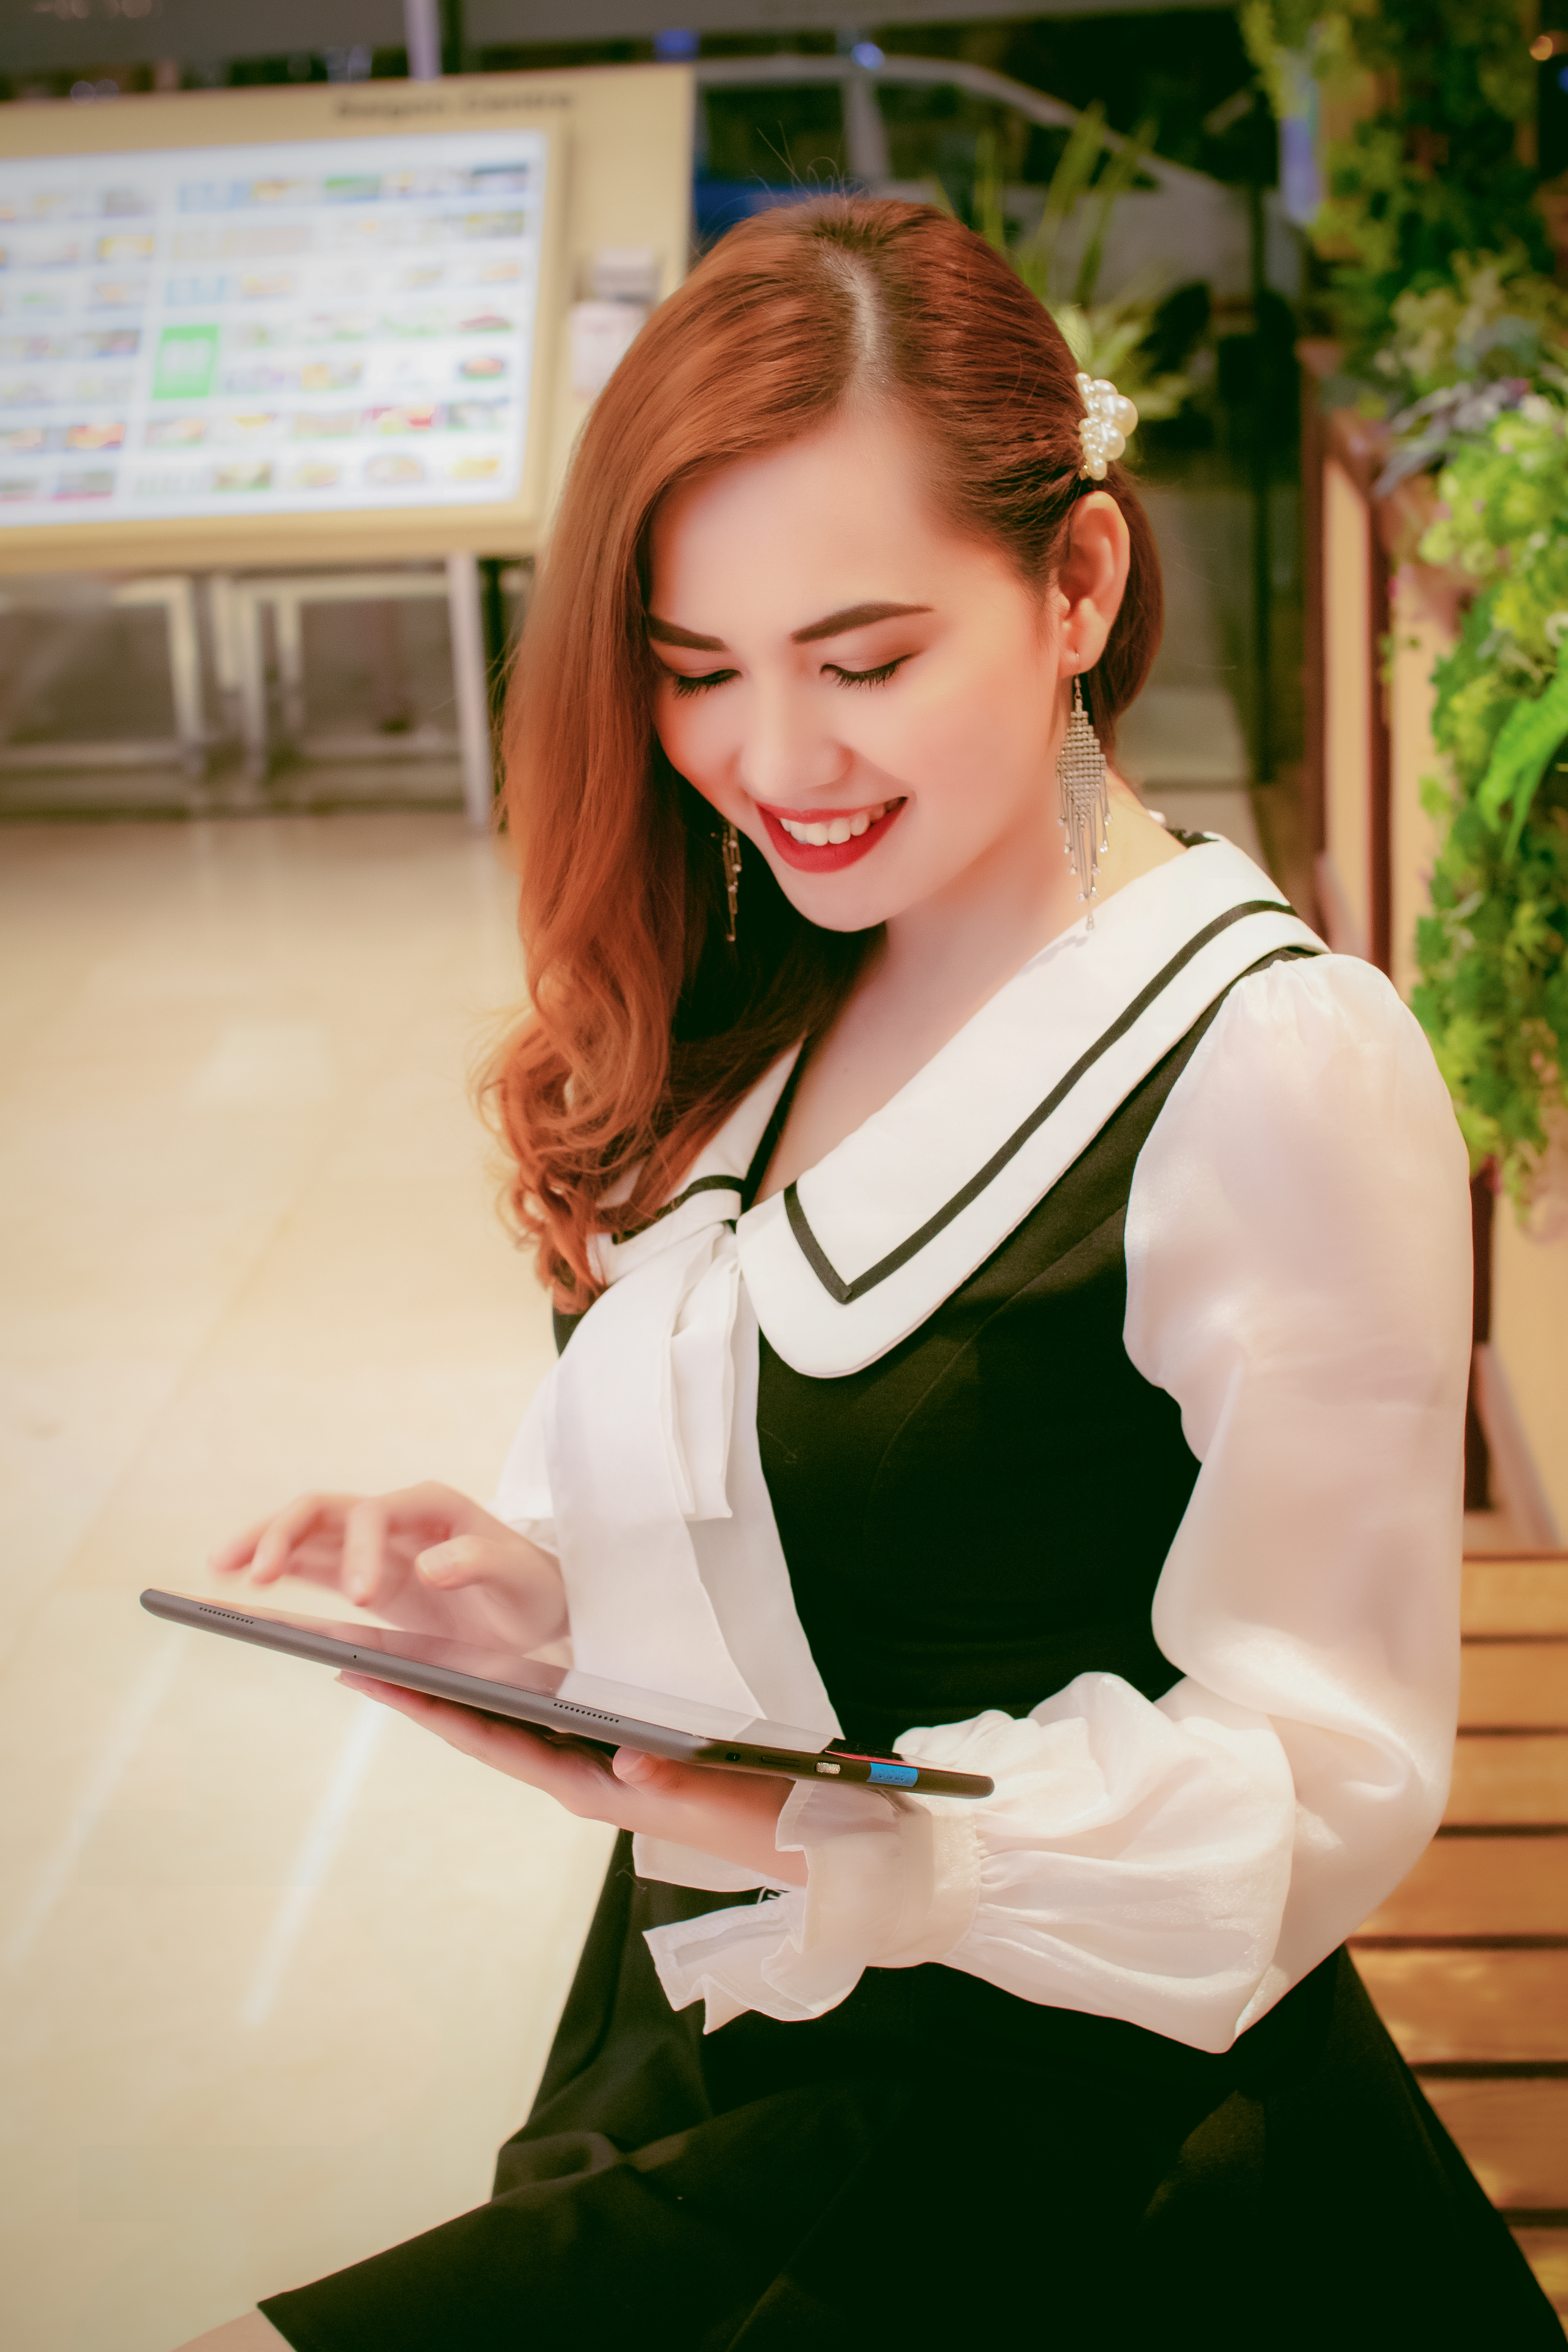 Photo of Smiling Woman in Black and White Outfit Standing While Using a Tablet